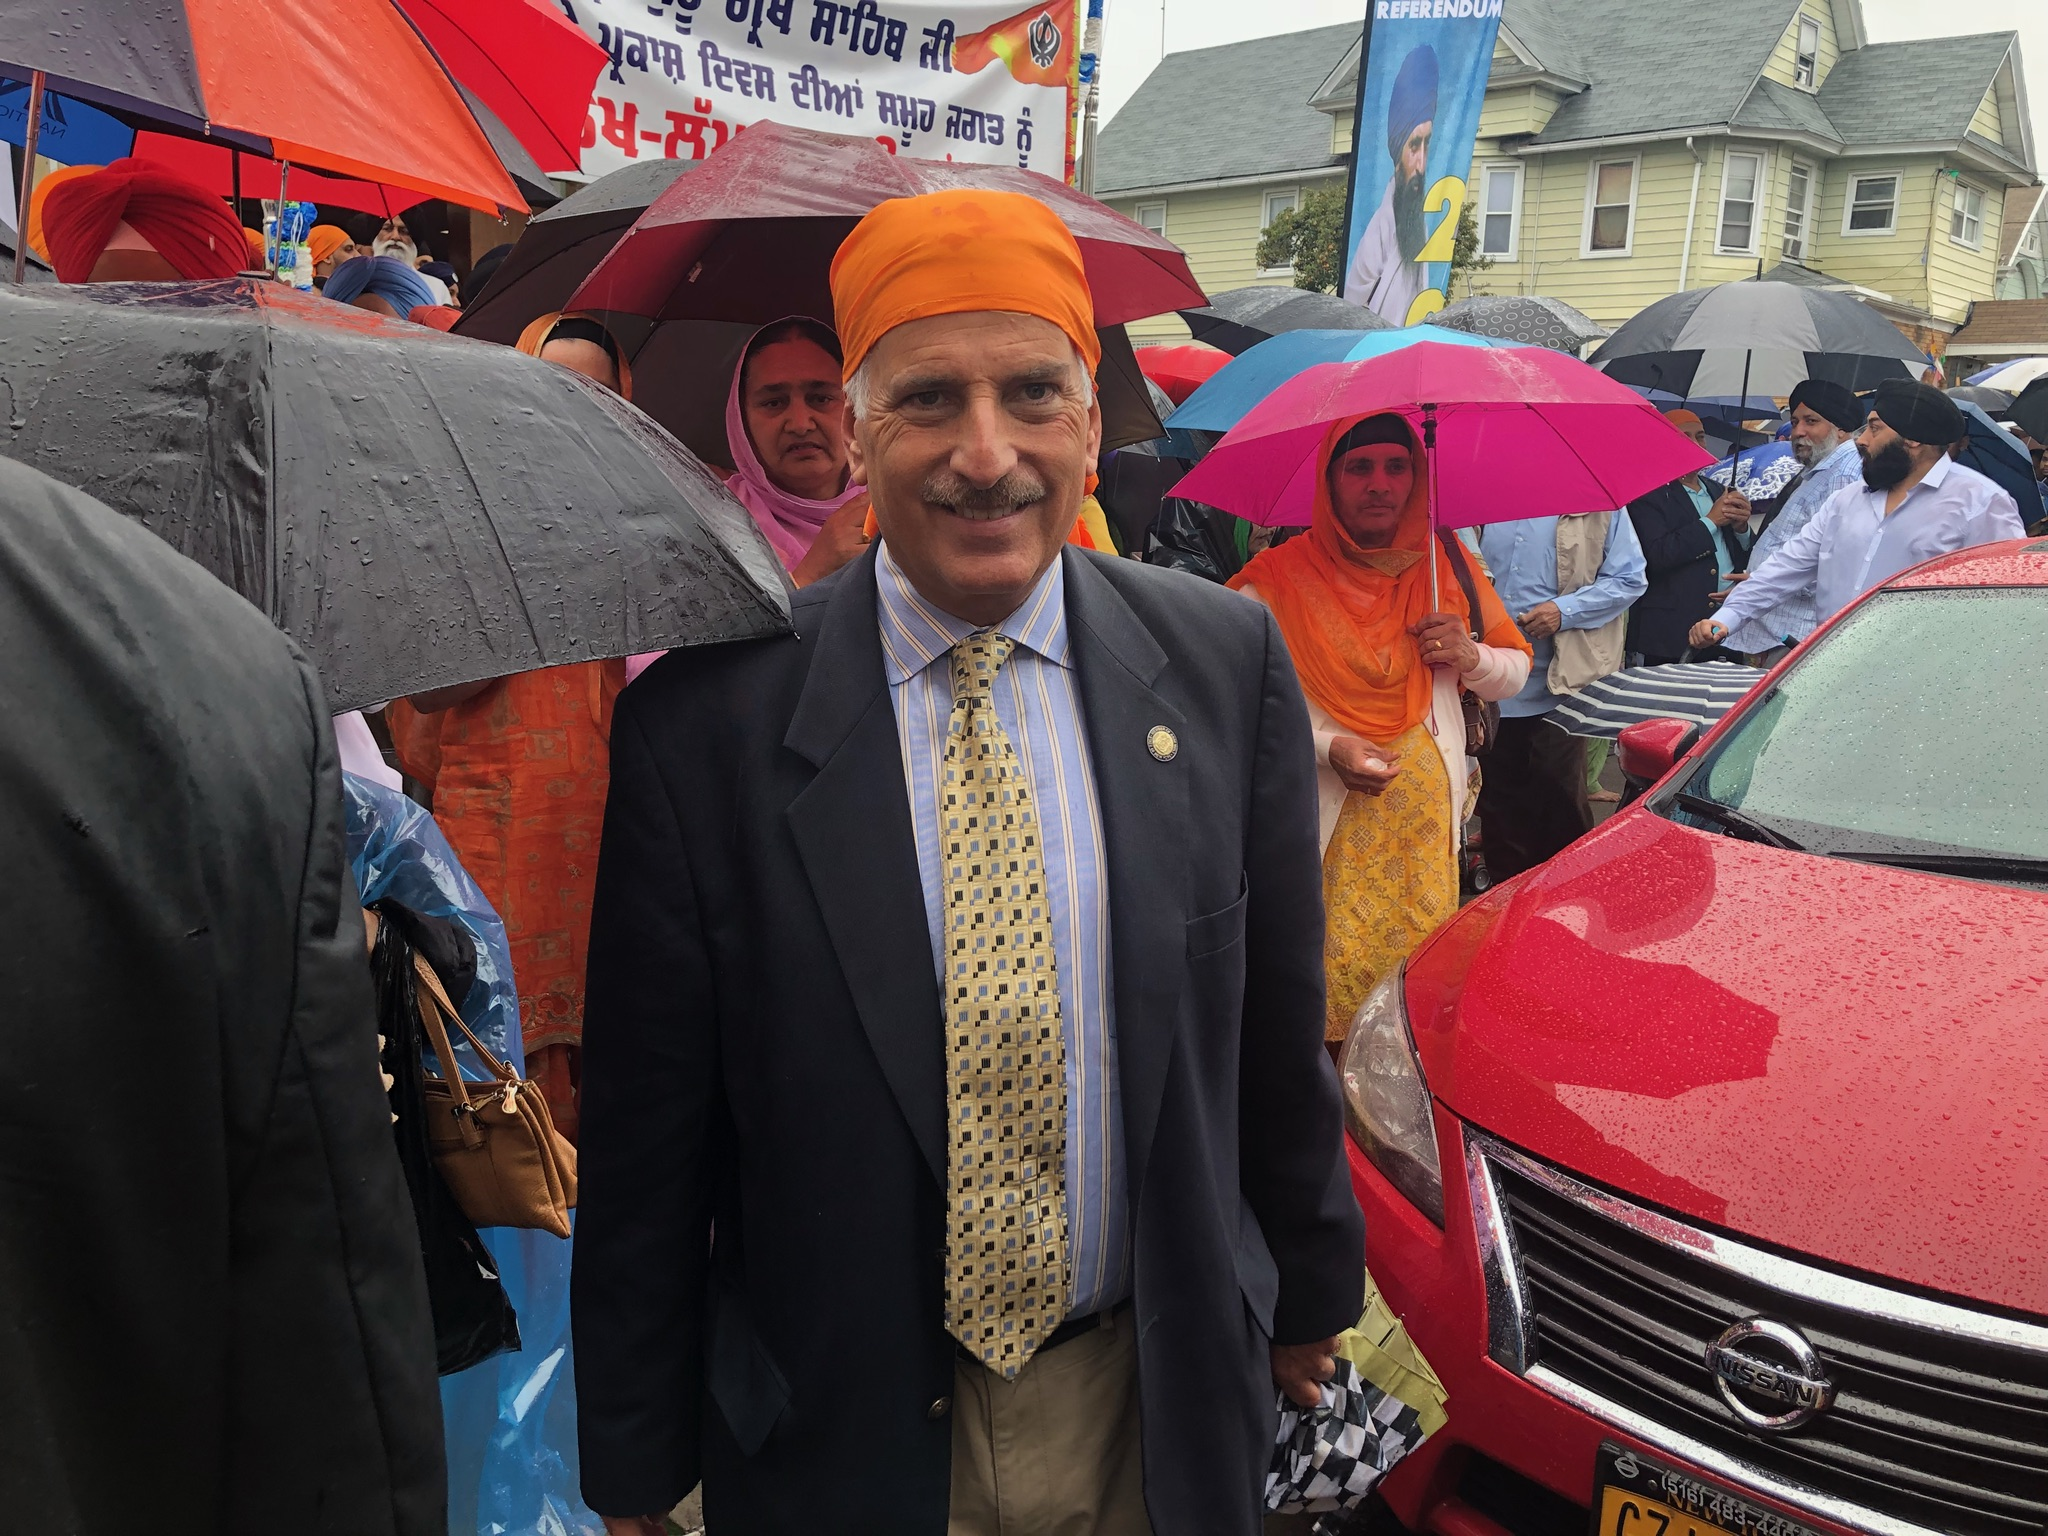 Assemblyman David Weprin marches in the Sikh Cultural Society Parade in Richmond Hill commemorating the anniversary of the installation of the Guru Granth Sahib Ji in the Sikh Golden Temple in India.